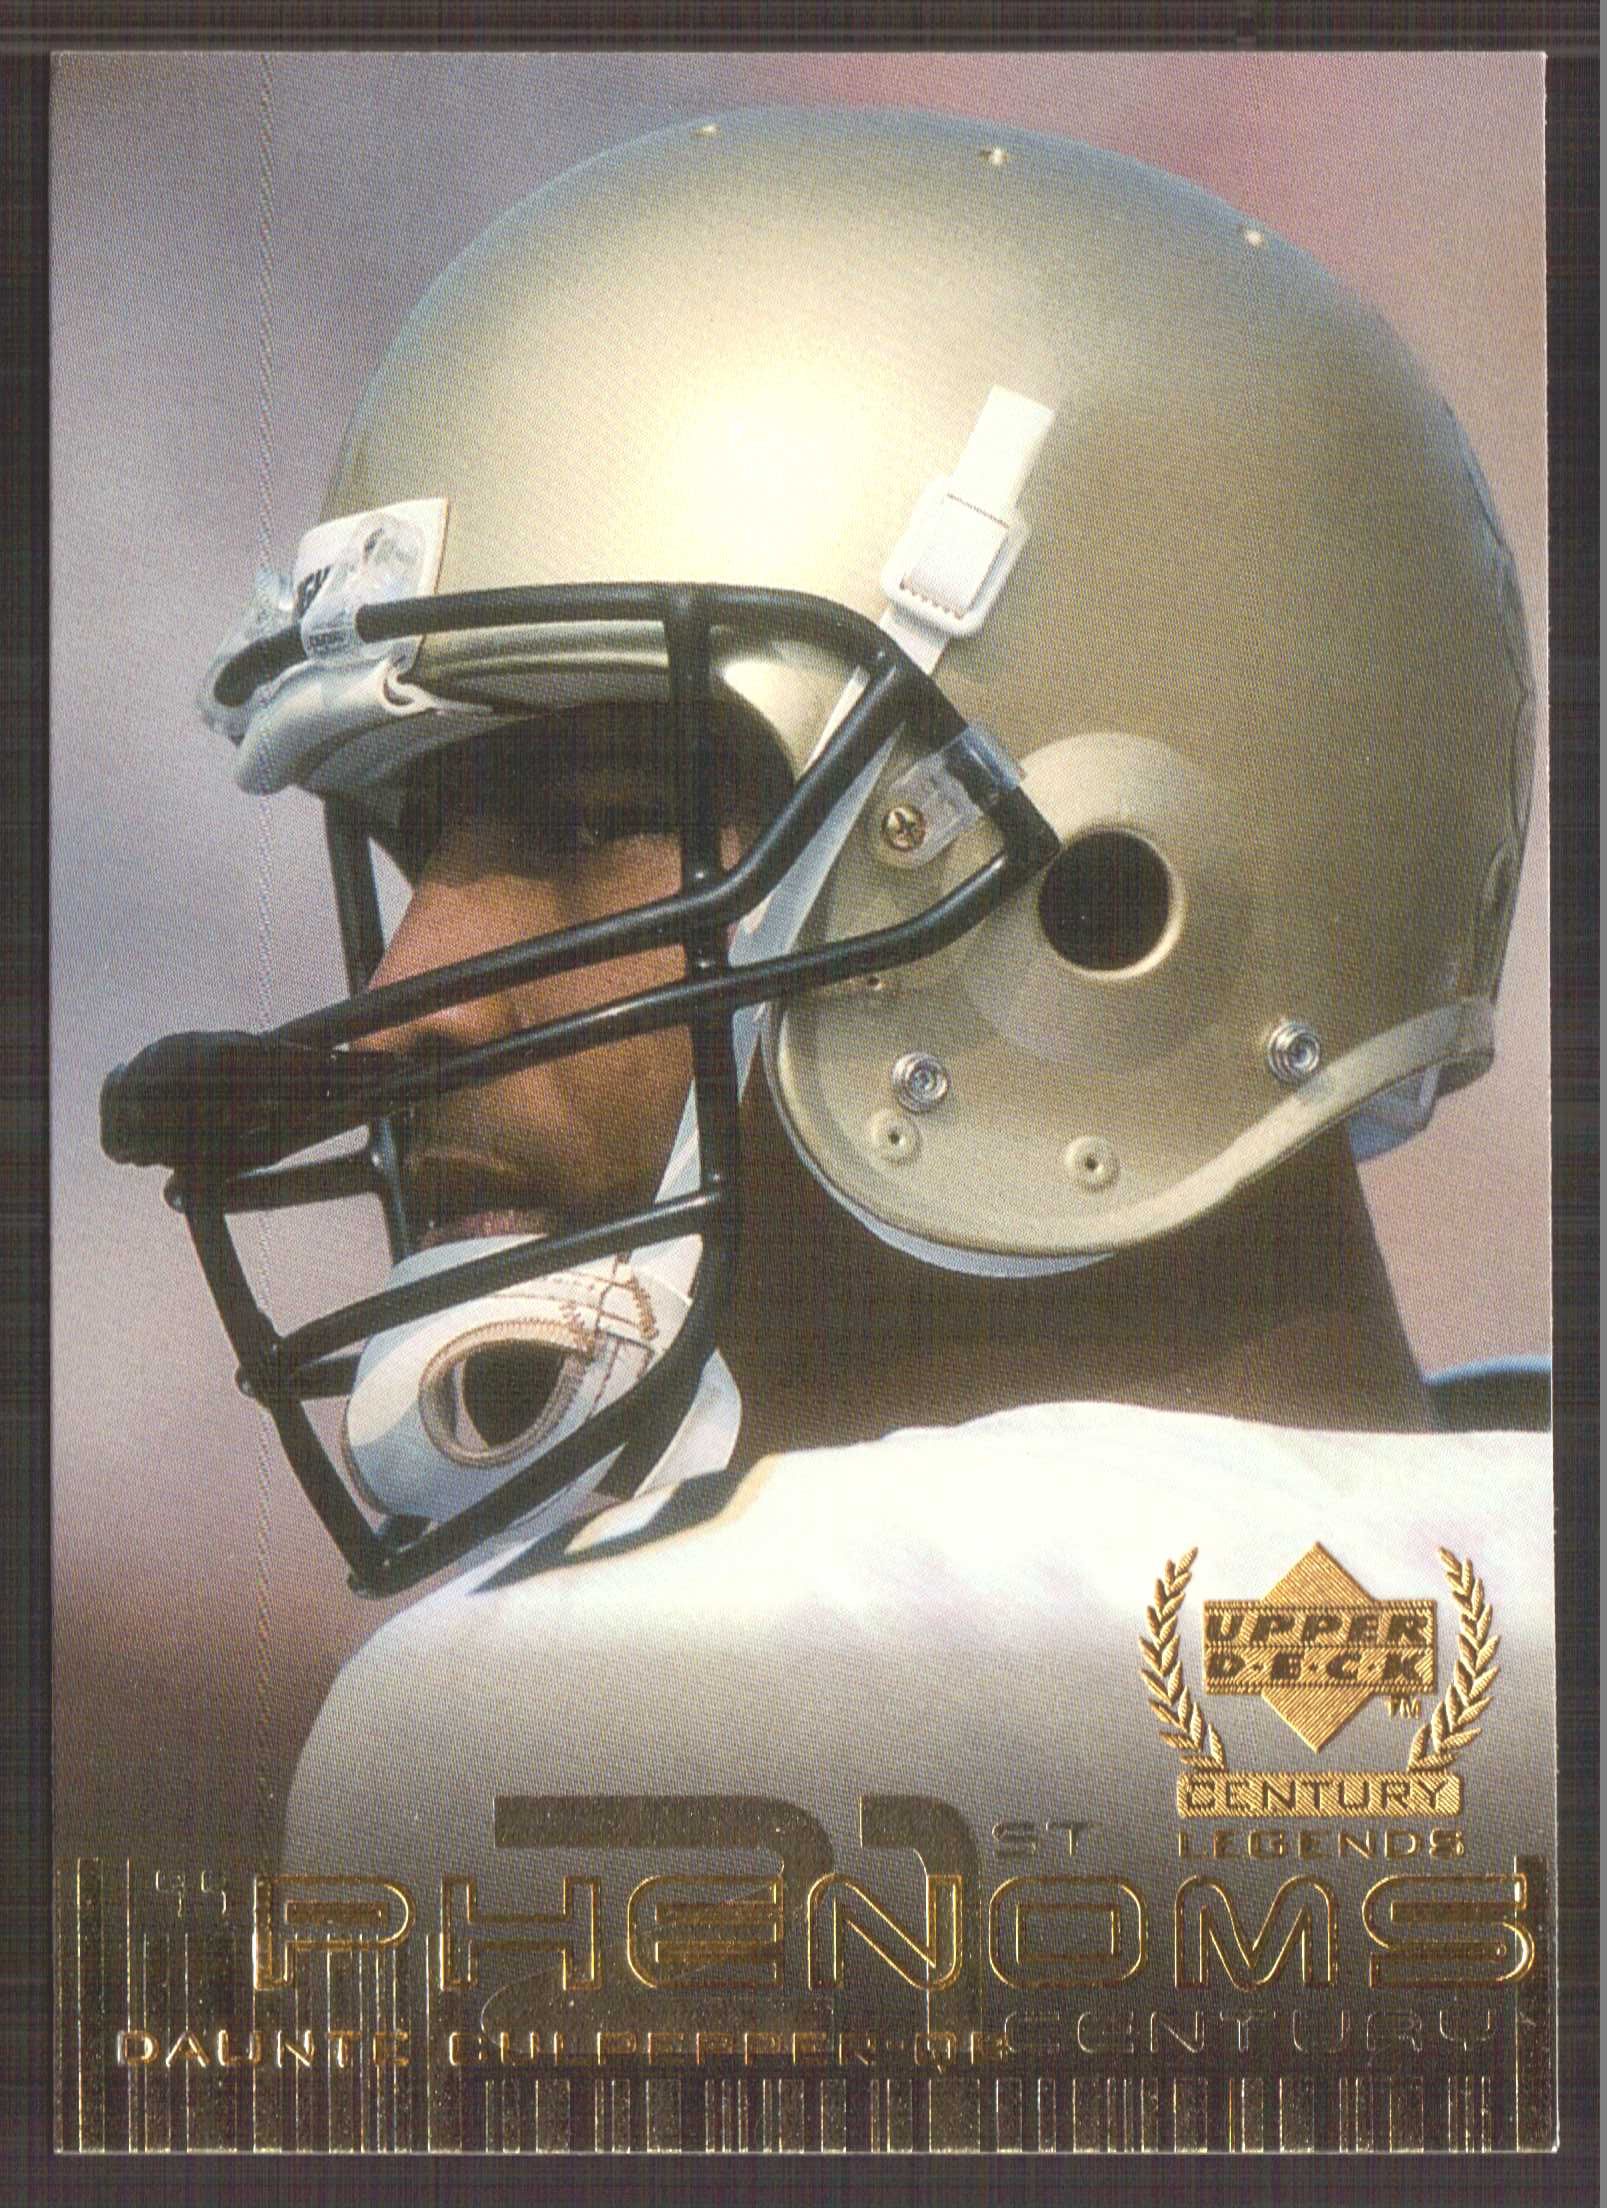 1999 Upper Deck Century Legends #134 Daunte Culpepper RC